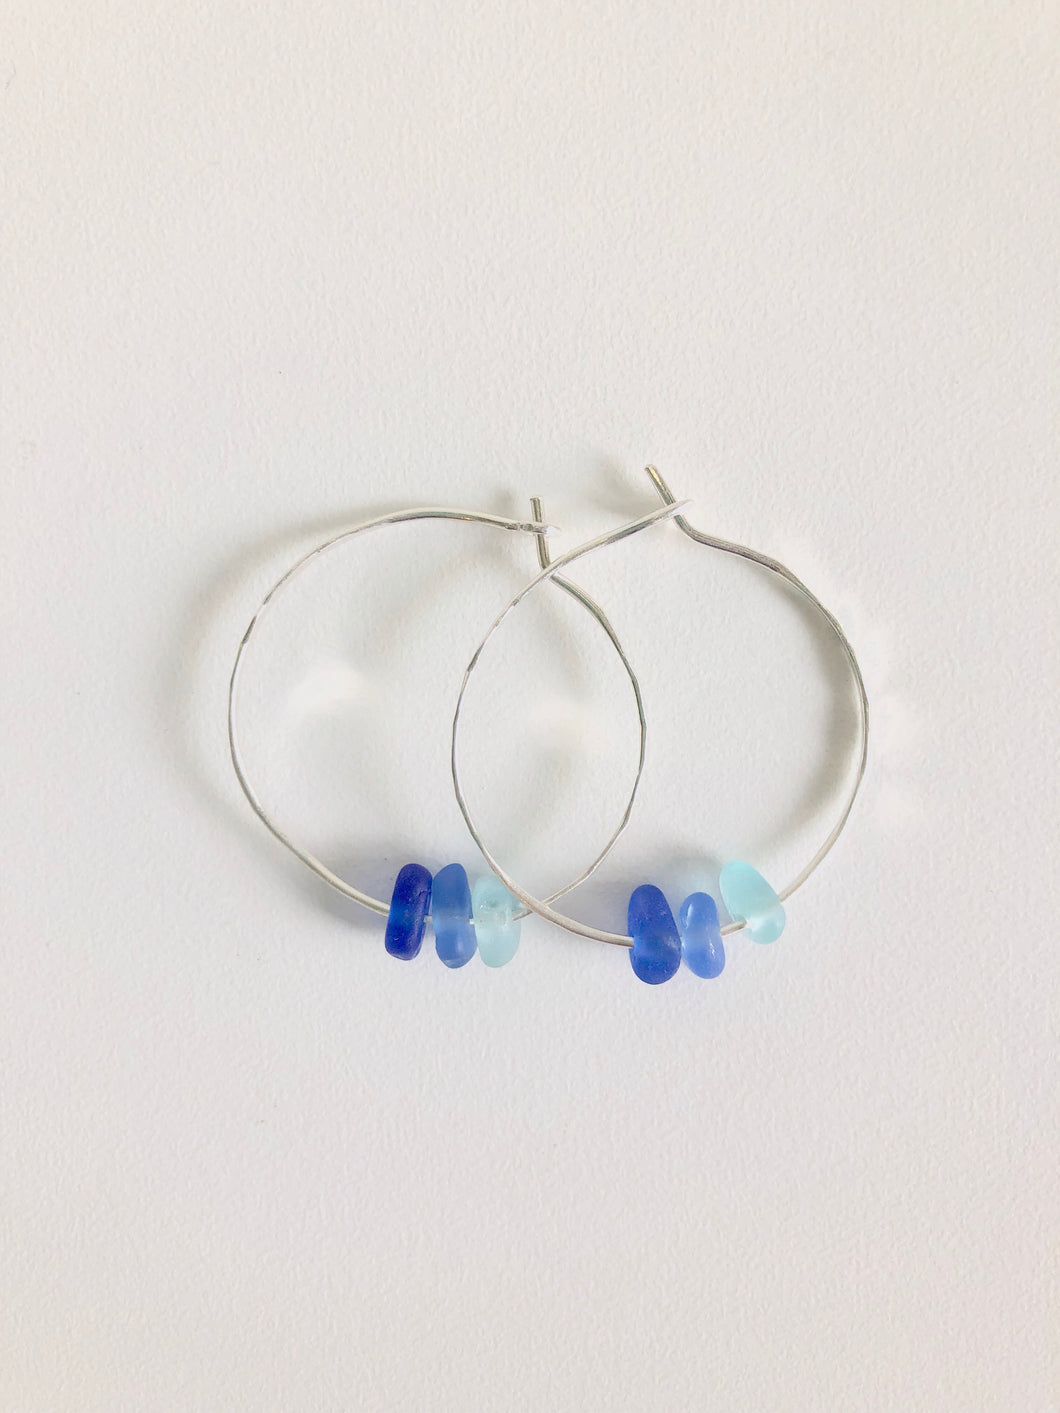 Shades of Blue Sea Glass Hoops